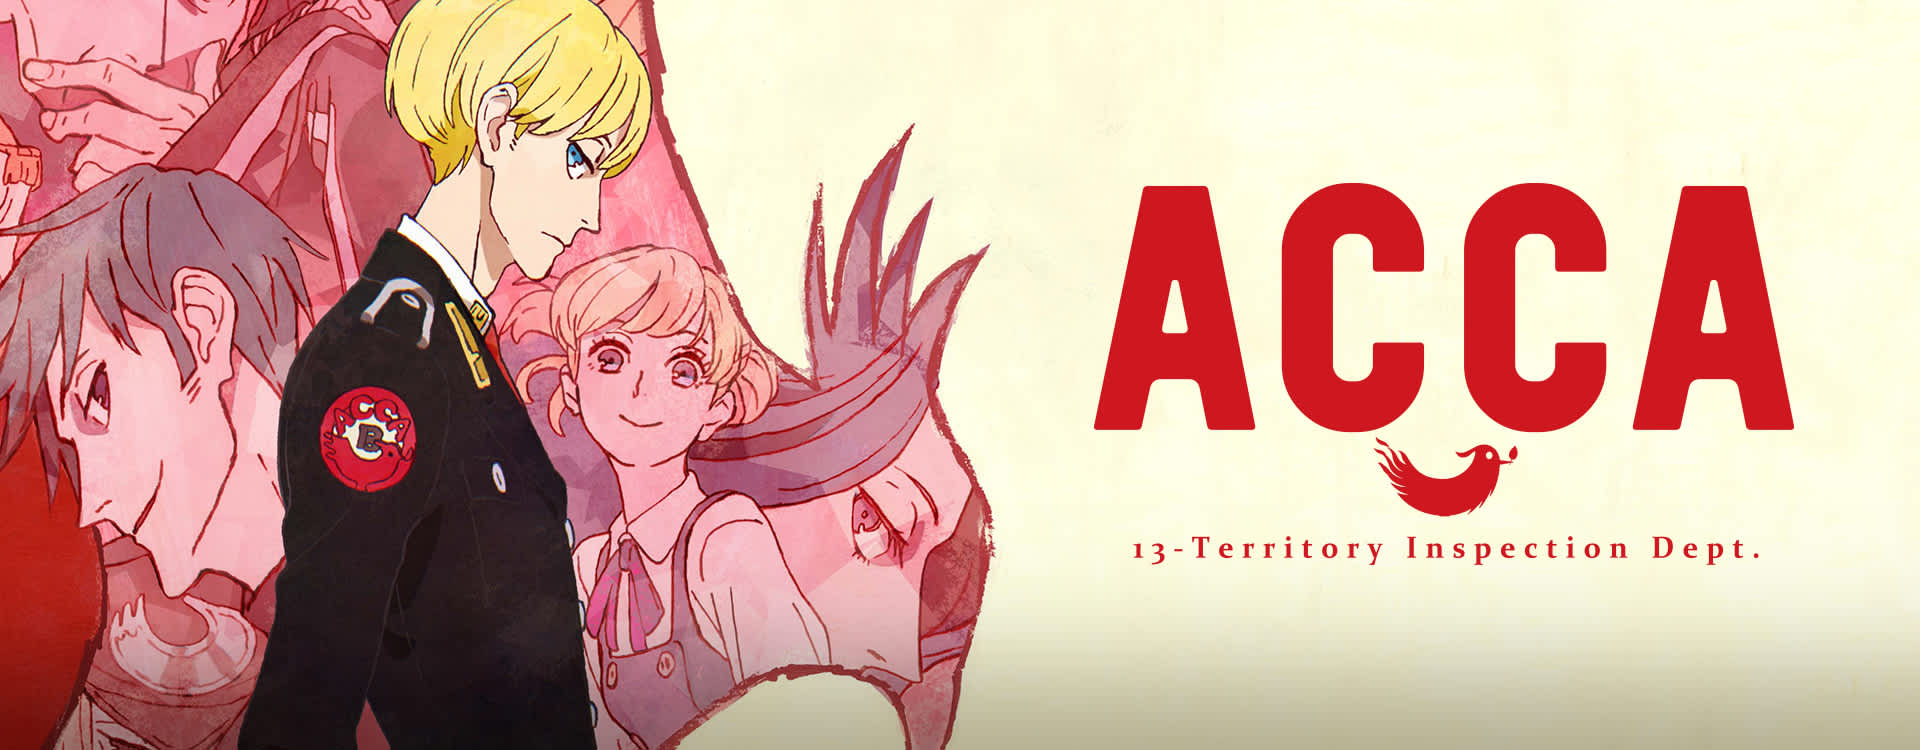 ACCA-Banner